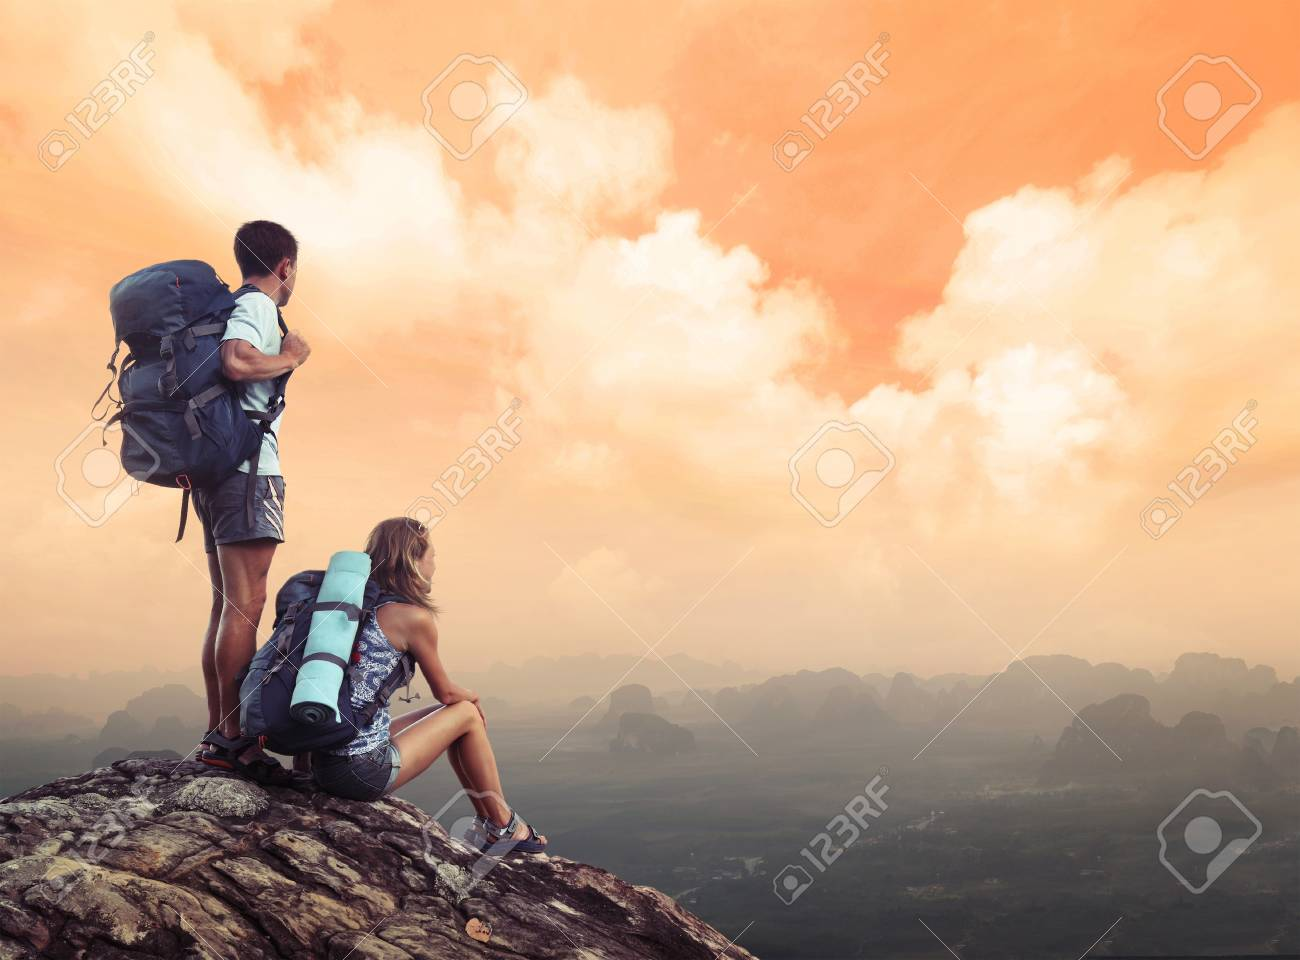 Two hikers with backpacks standing on top of a mountain and enjoying a valley view Stock Photo - 16840913